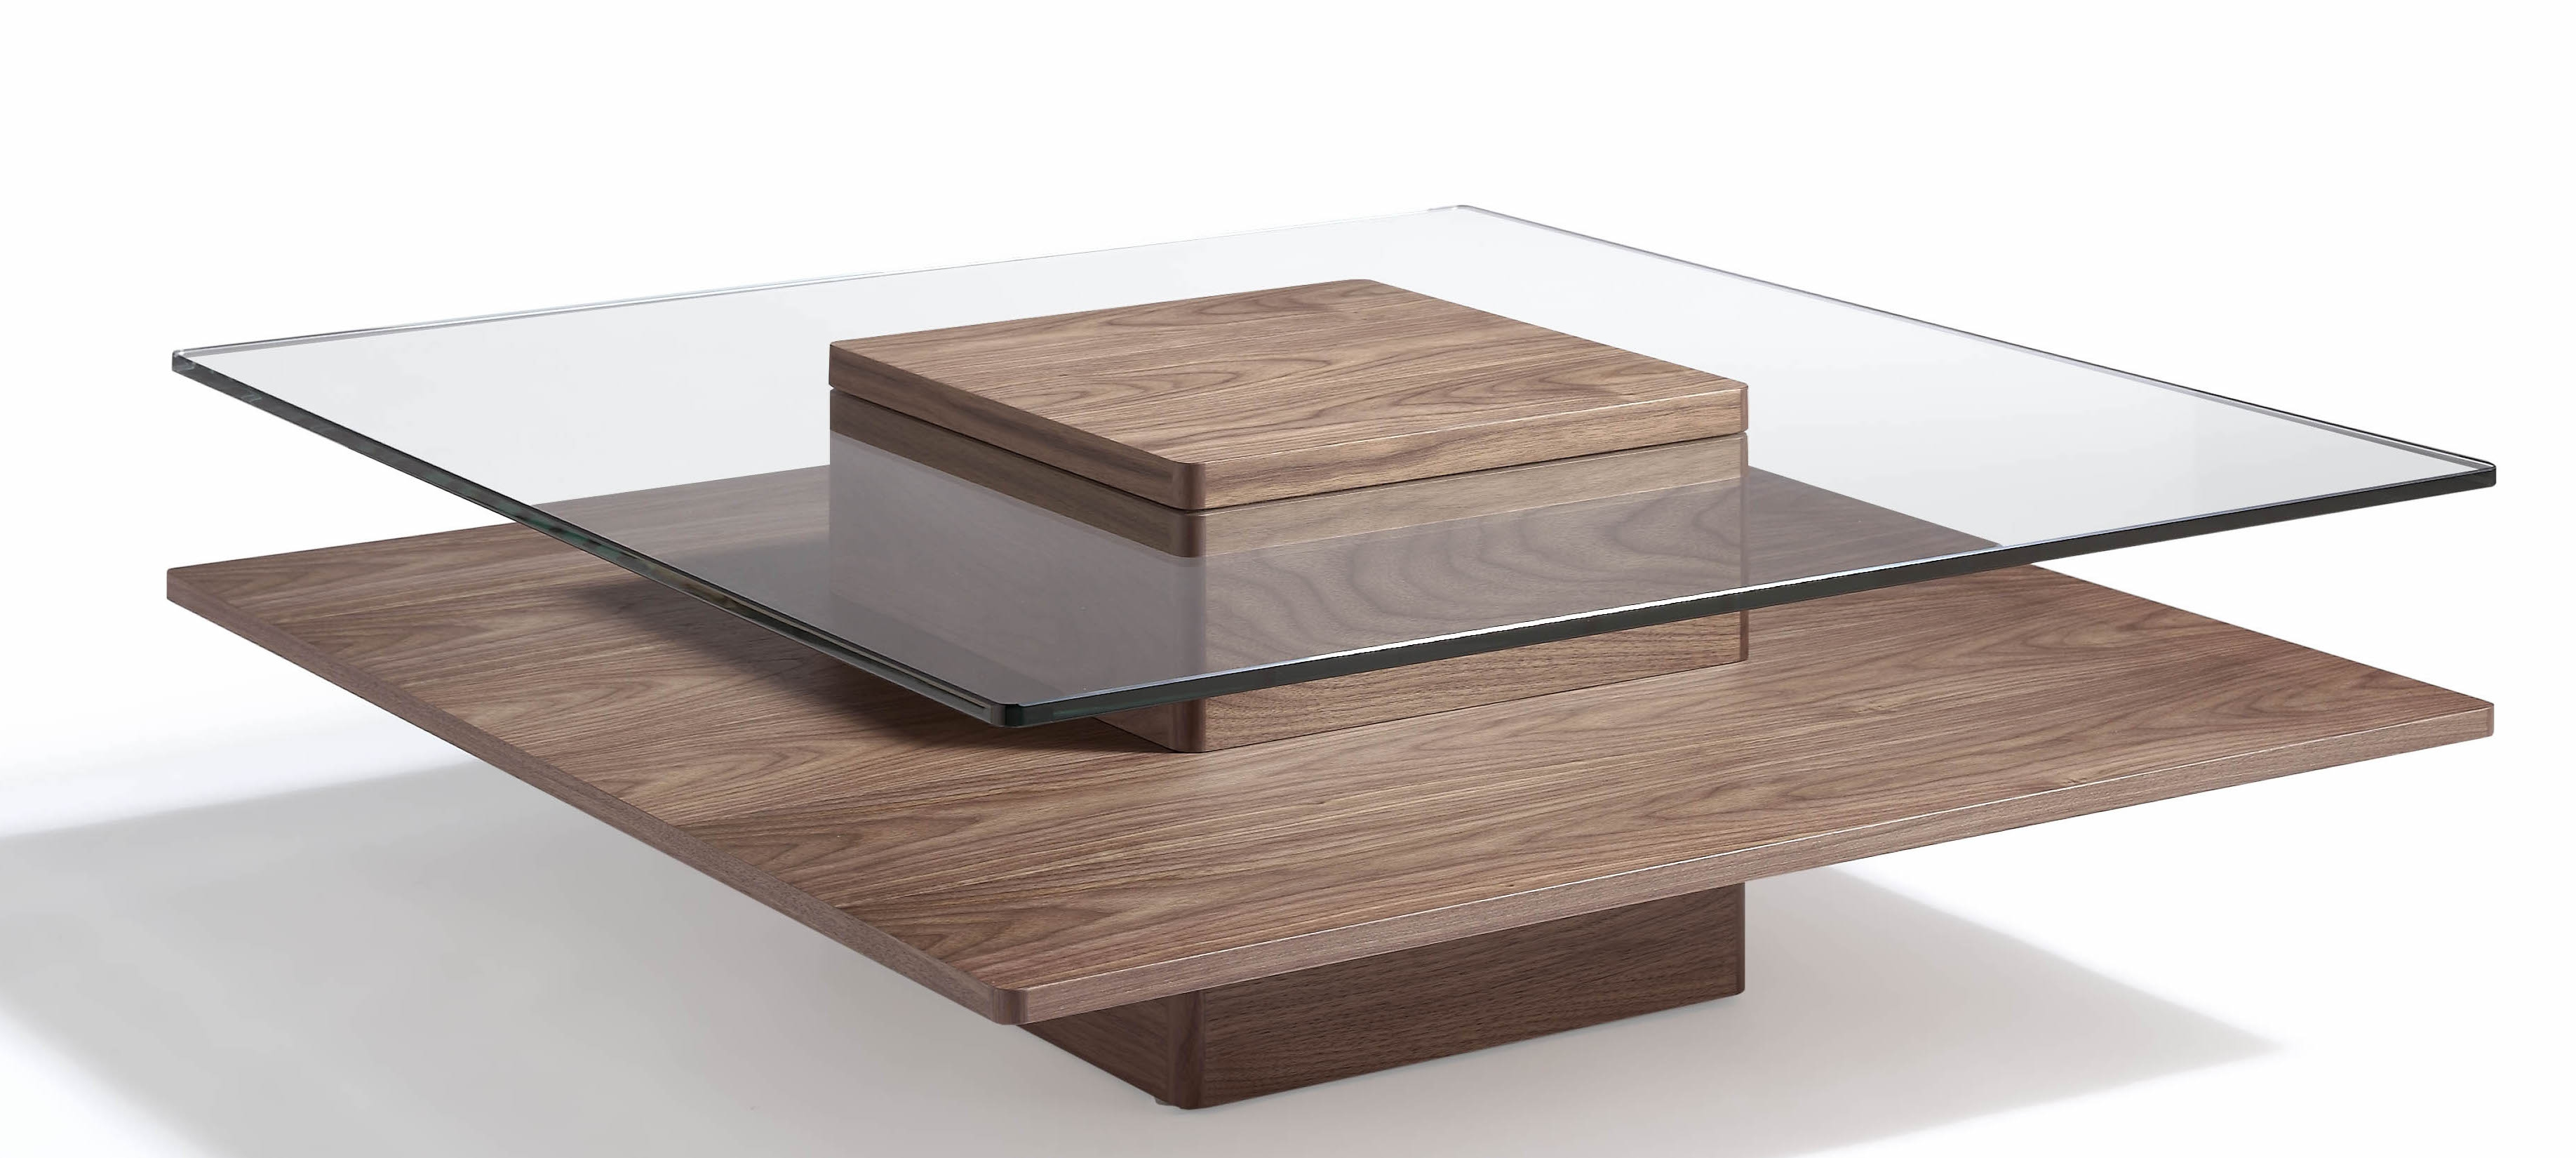 Elegant Table Basse Carr E Bois Et Fer Forg Id Es De Conception  # Grande Table Basse Carre Indus